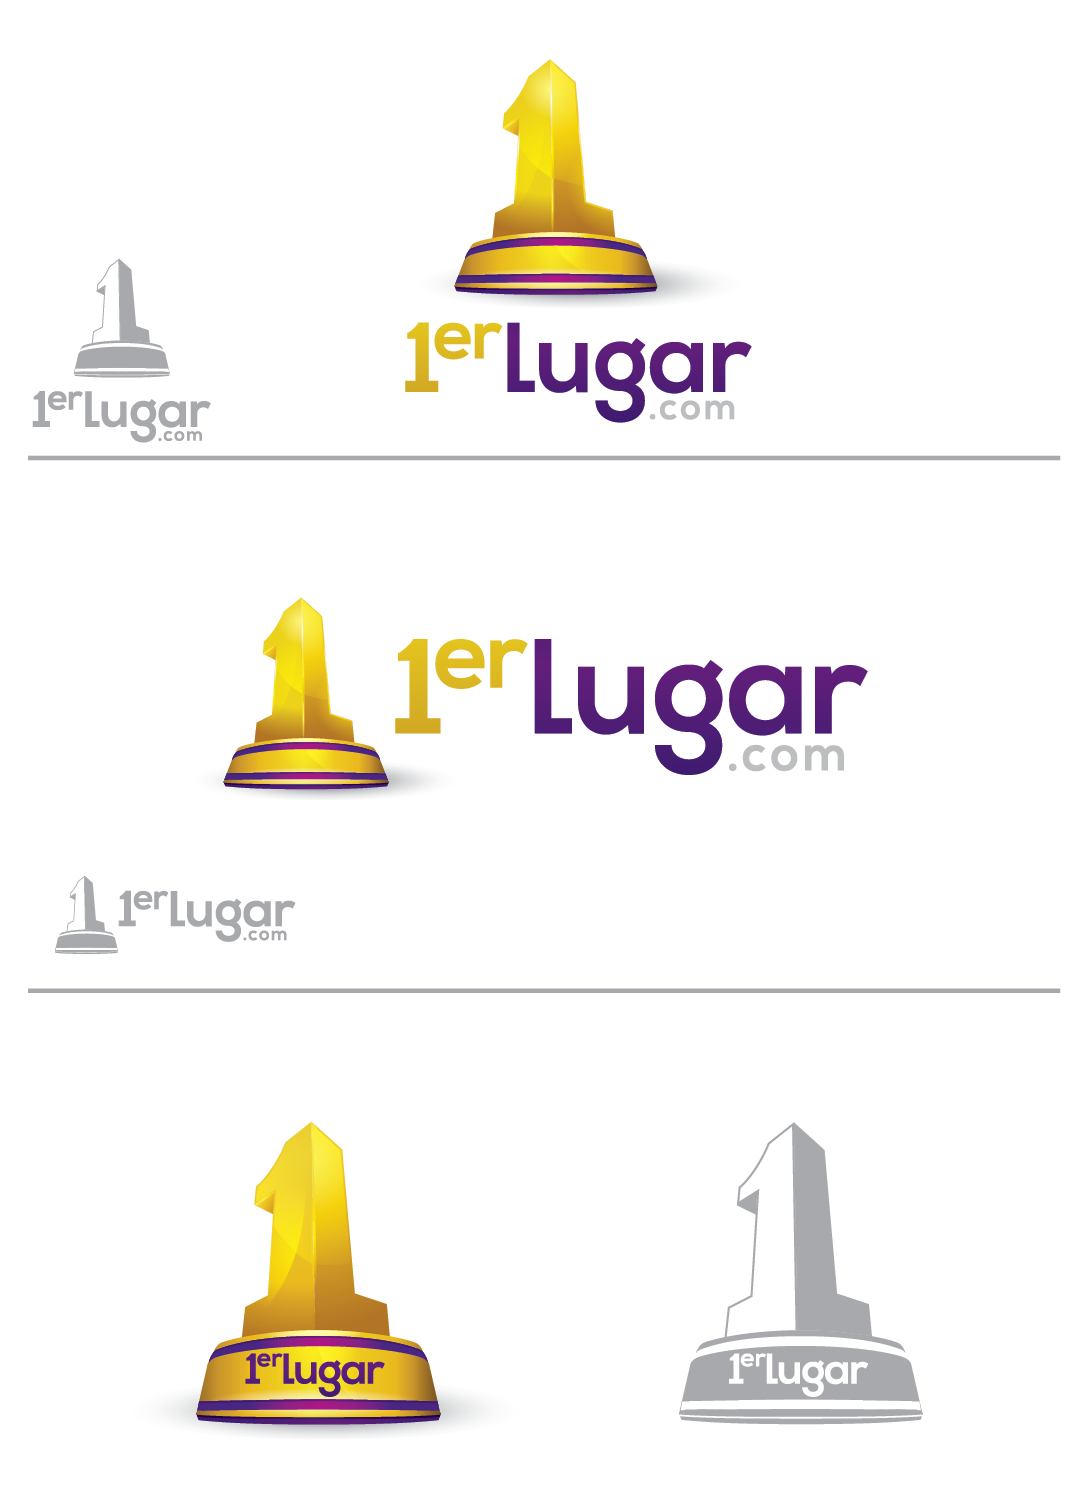 New logo wanted for 1erlugar.com